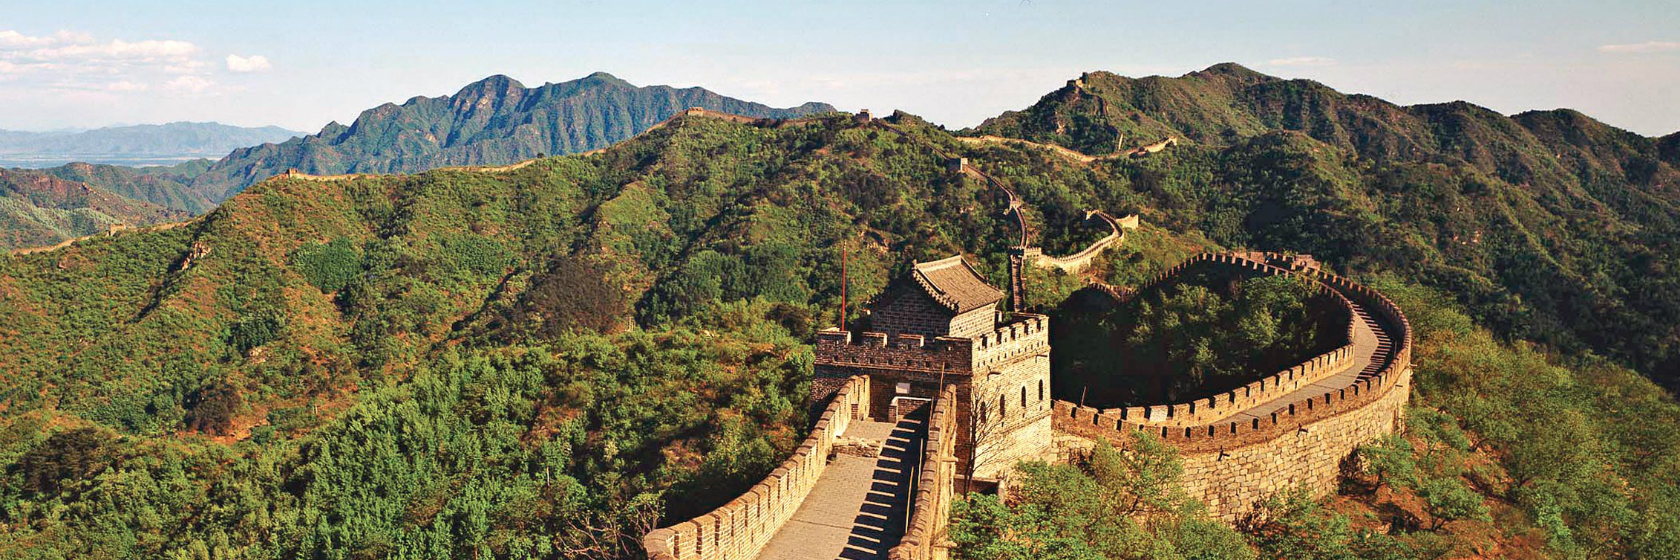 China Great Wall Worlds Top Destinations